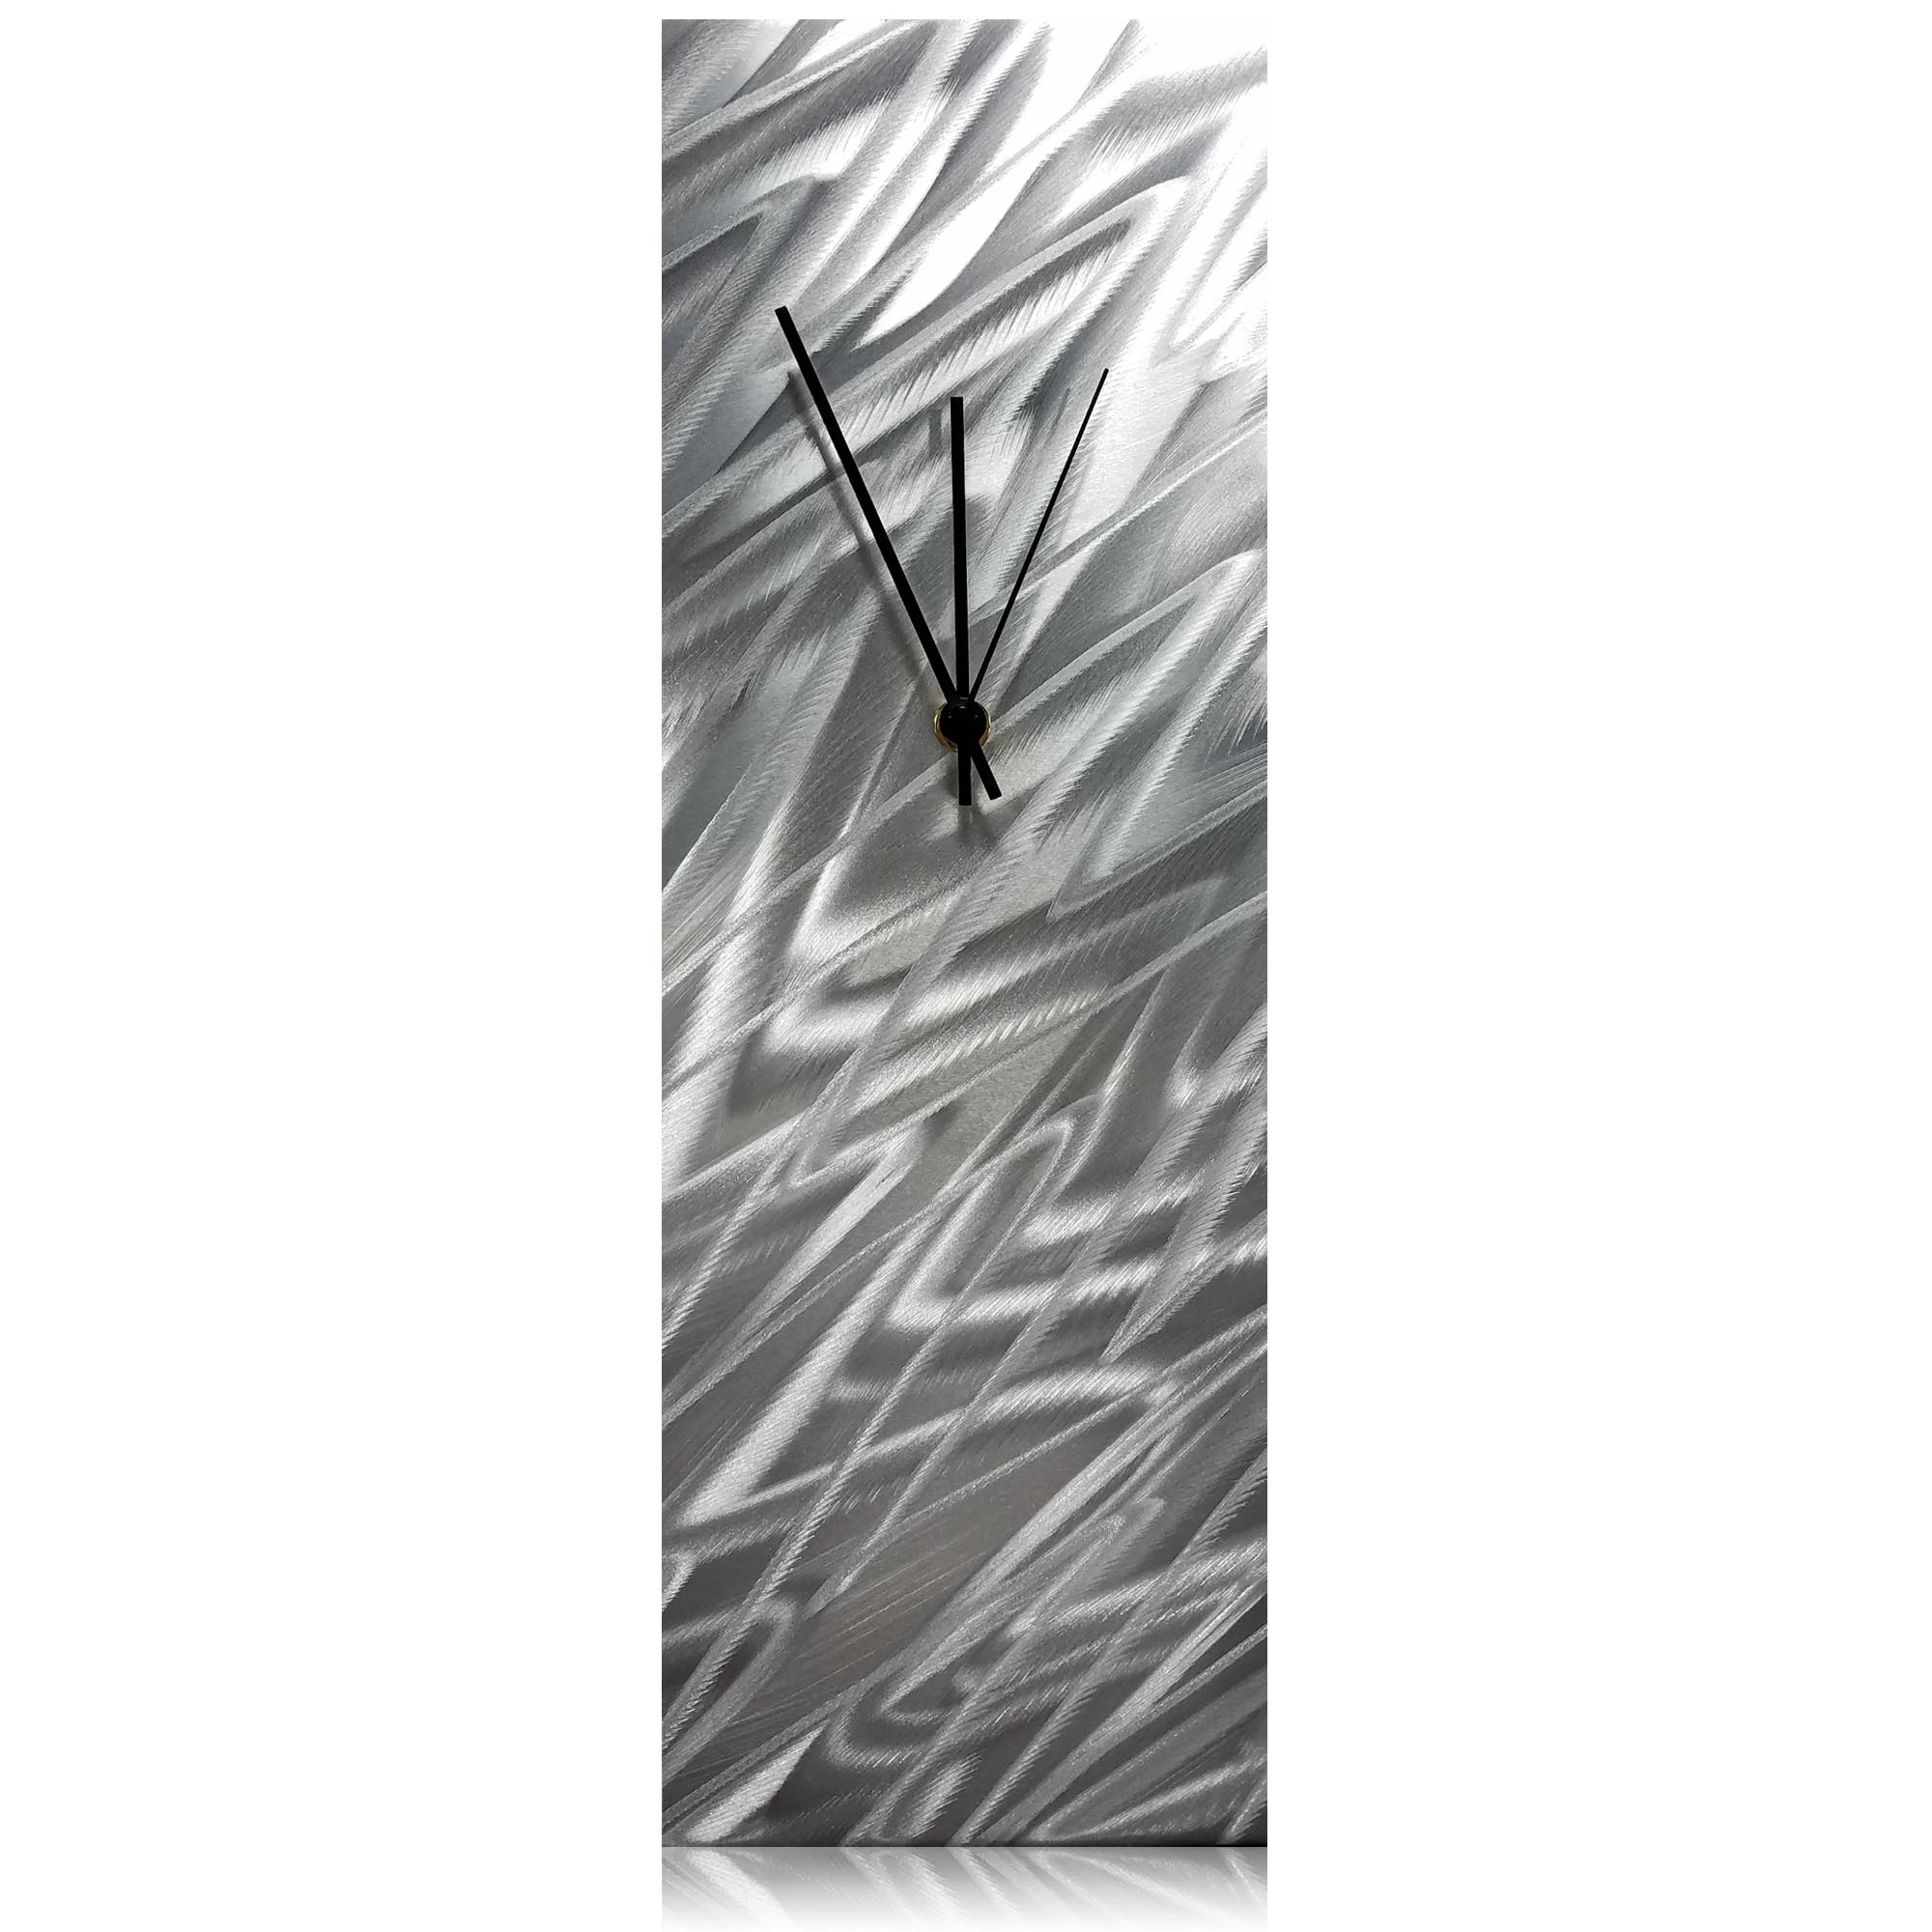 Metal Art Studio Silver Zig Zag Shelf Clock By Helena Martin Modern Desk Or Mantel Clock In Natural Aluminum Nh0053